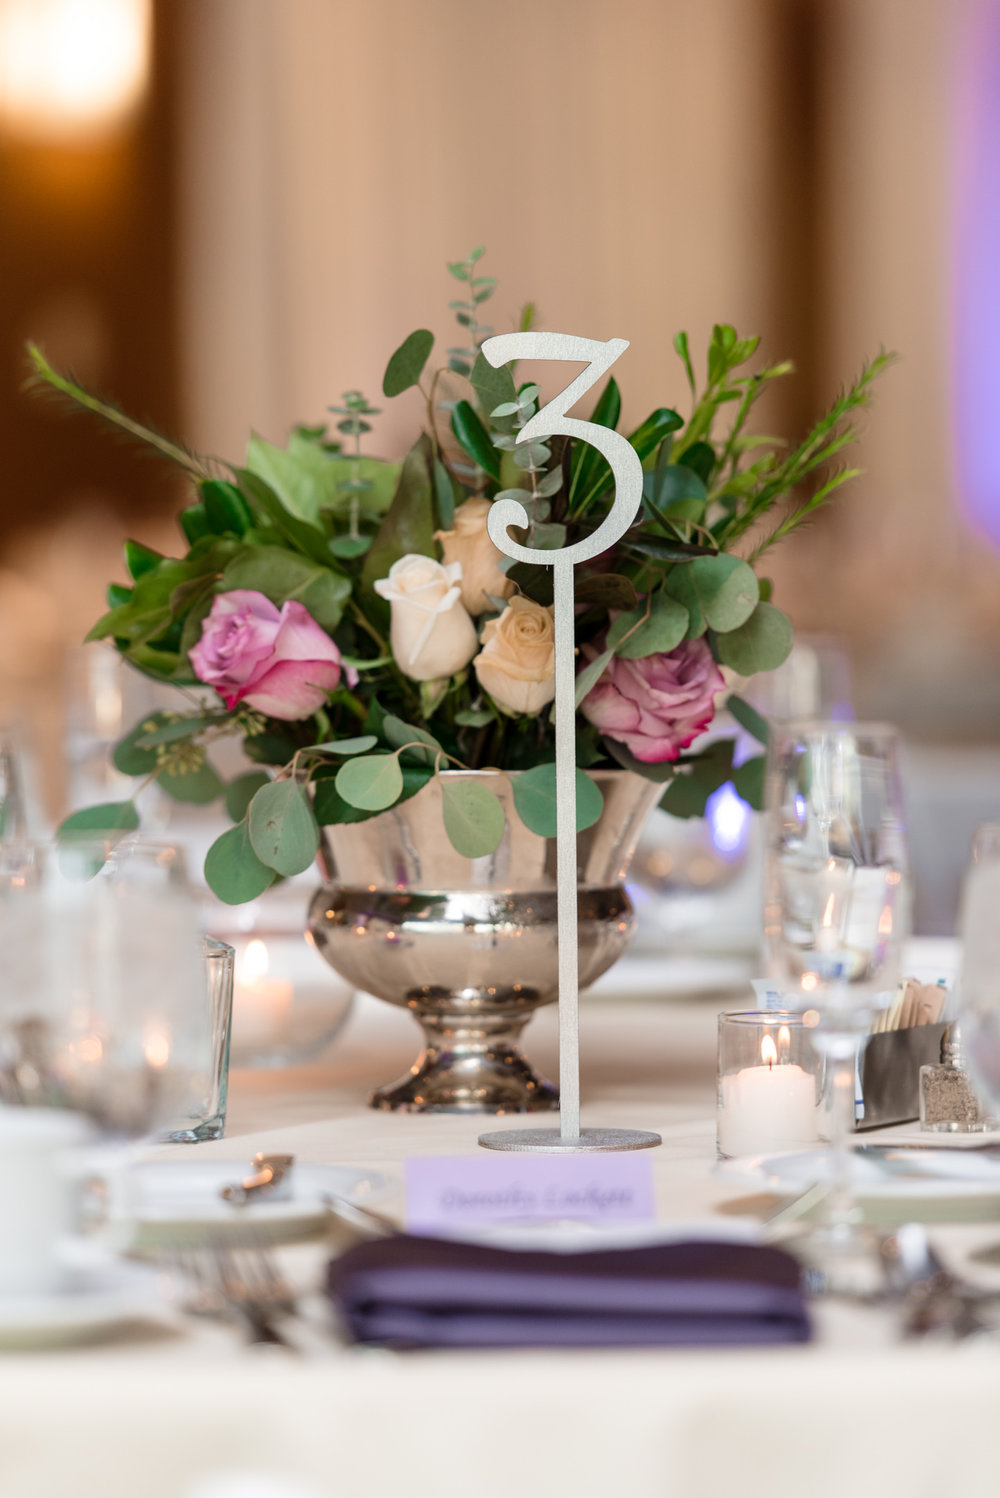 Table Centerpiece Wedding Details at Bell Harbor